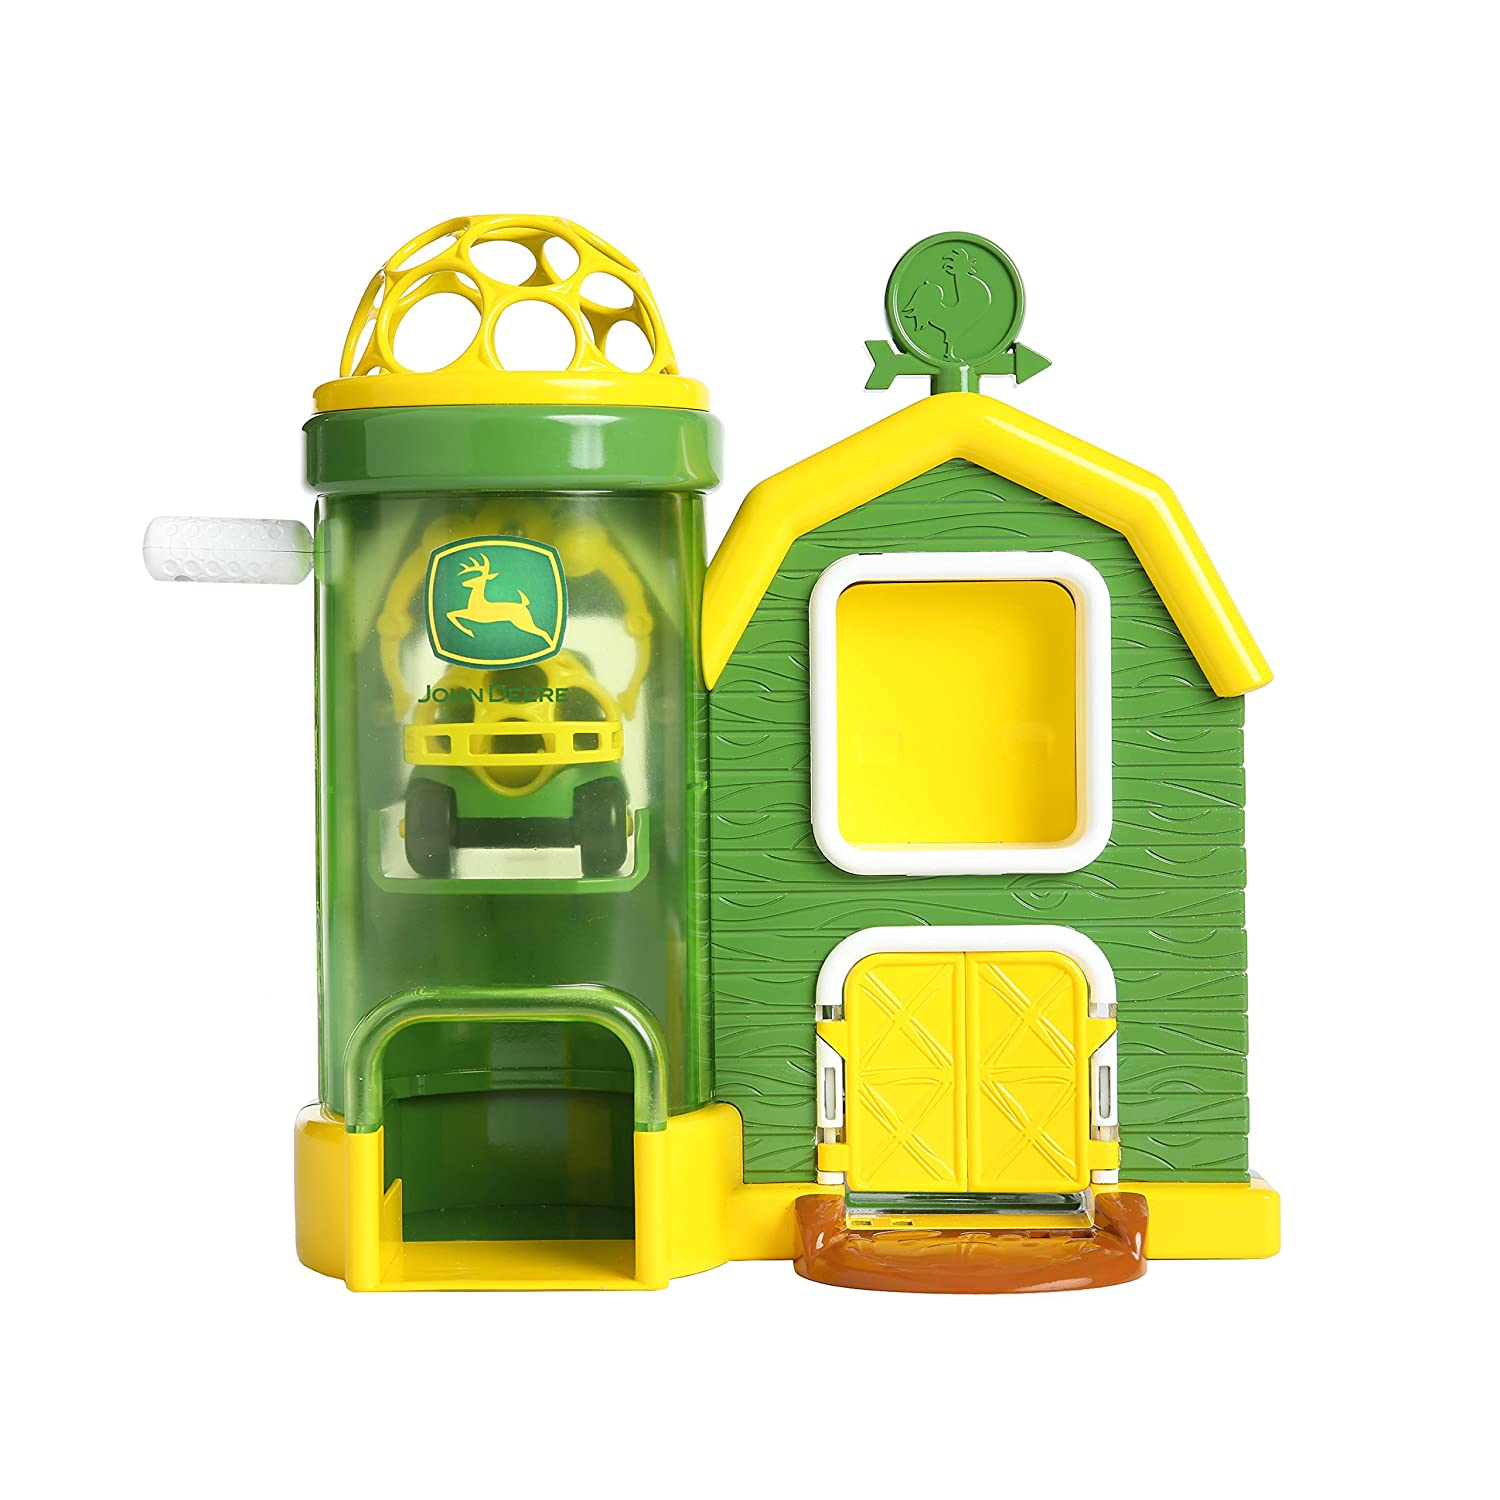 B079Z7FVFD Oball Go Grippers John Deere Rev Up Barnhouse Playset and Push Vehicle, Ages 12 months + 81paVQAQ3dL